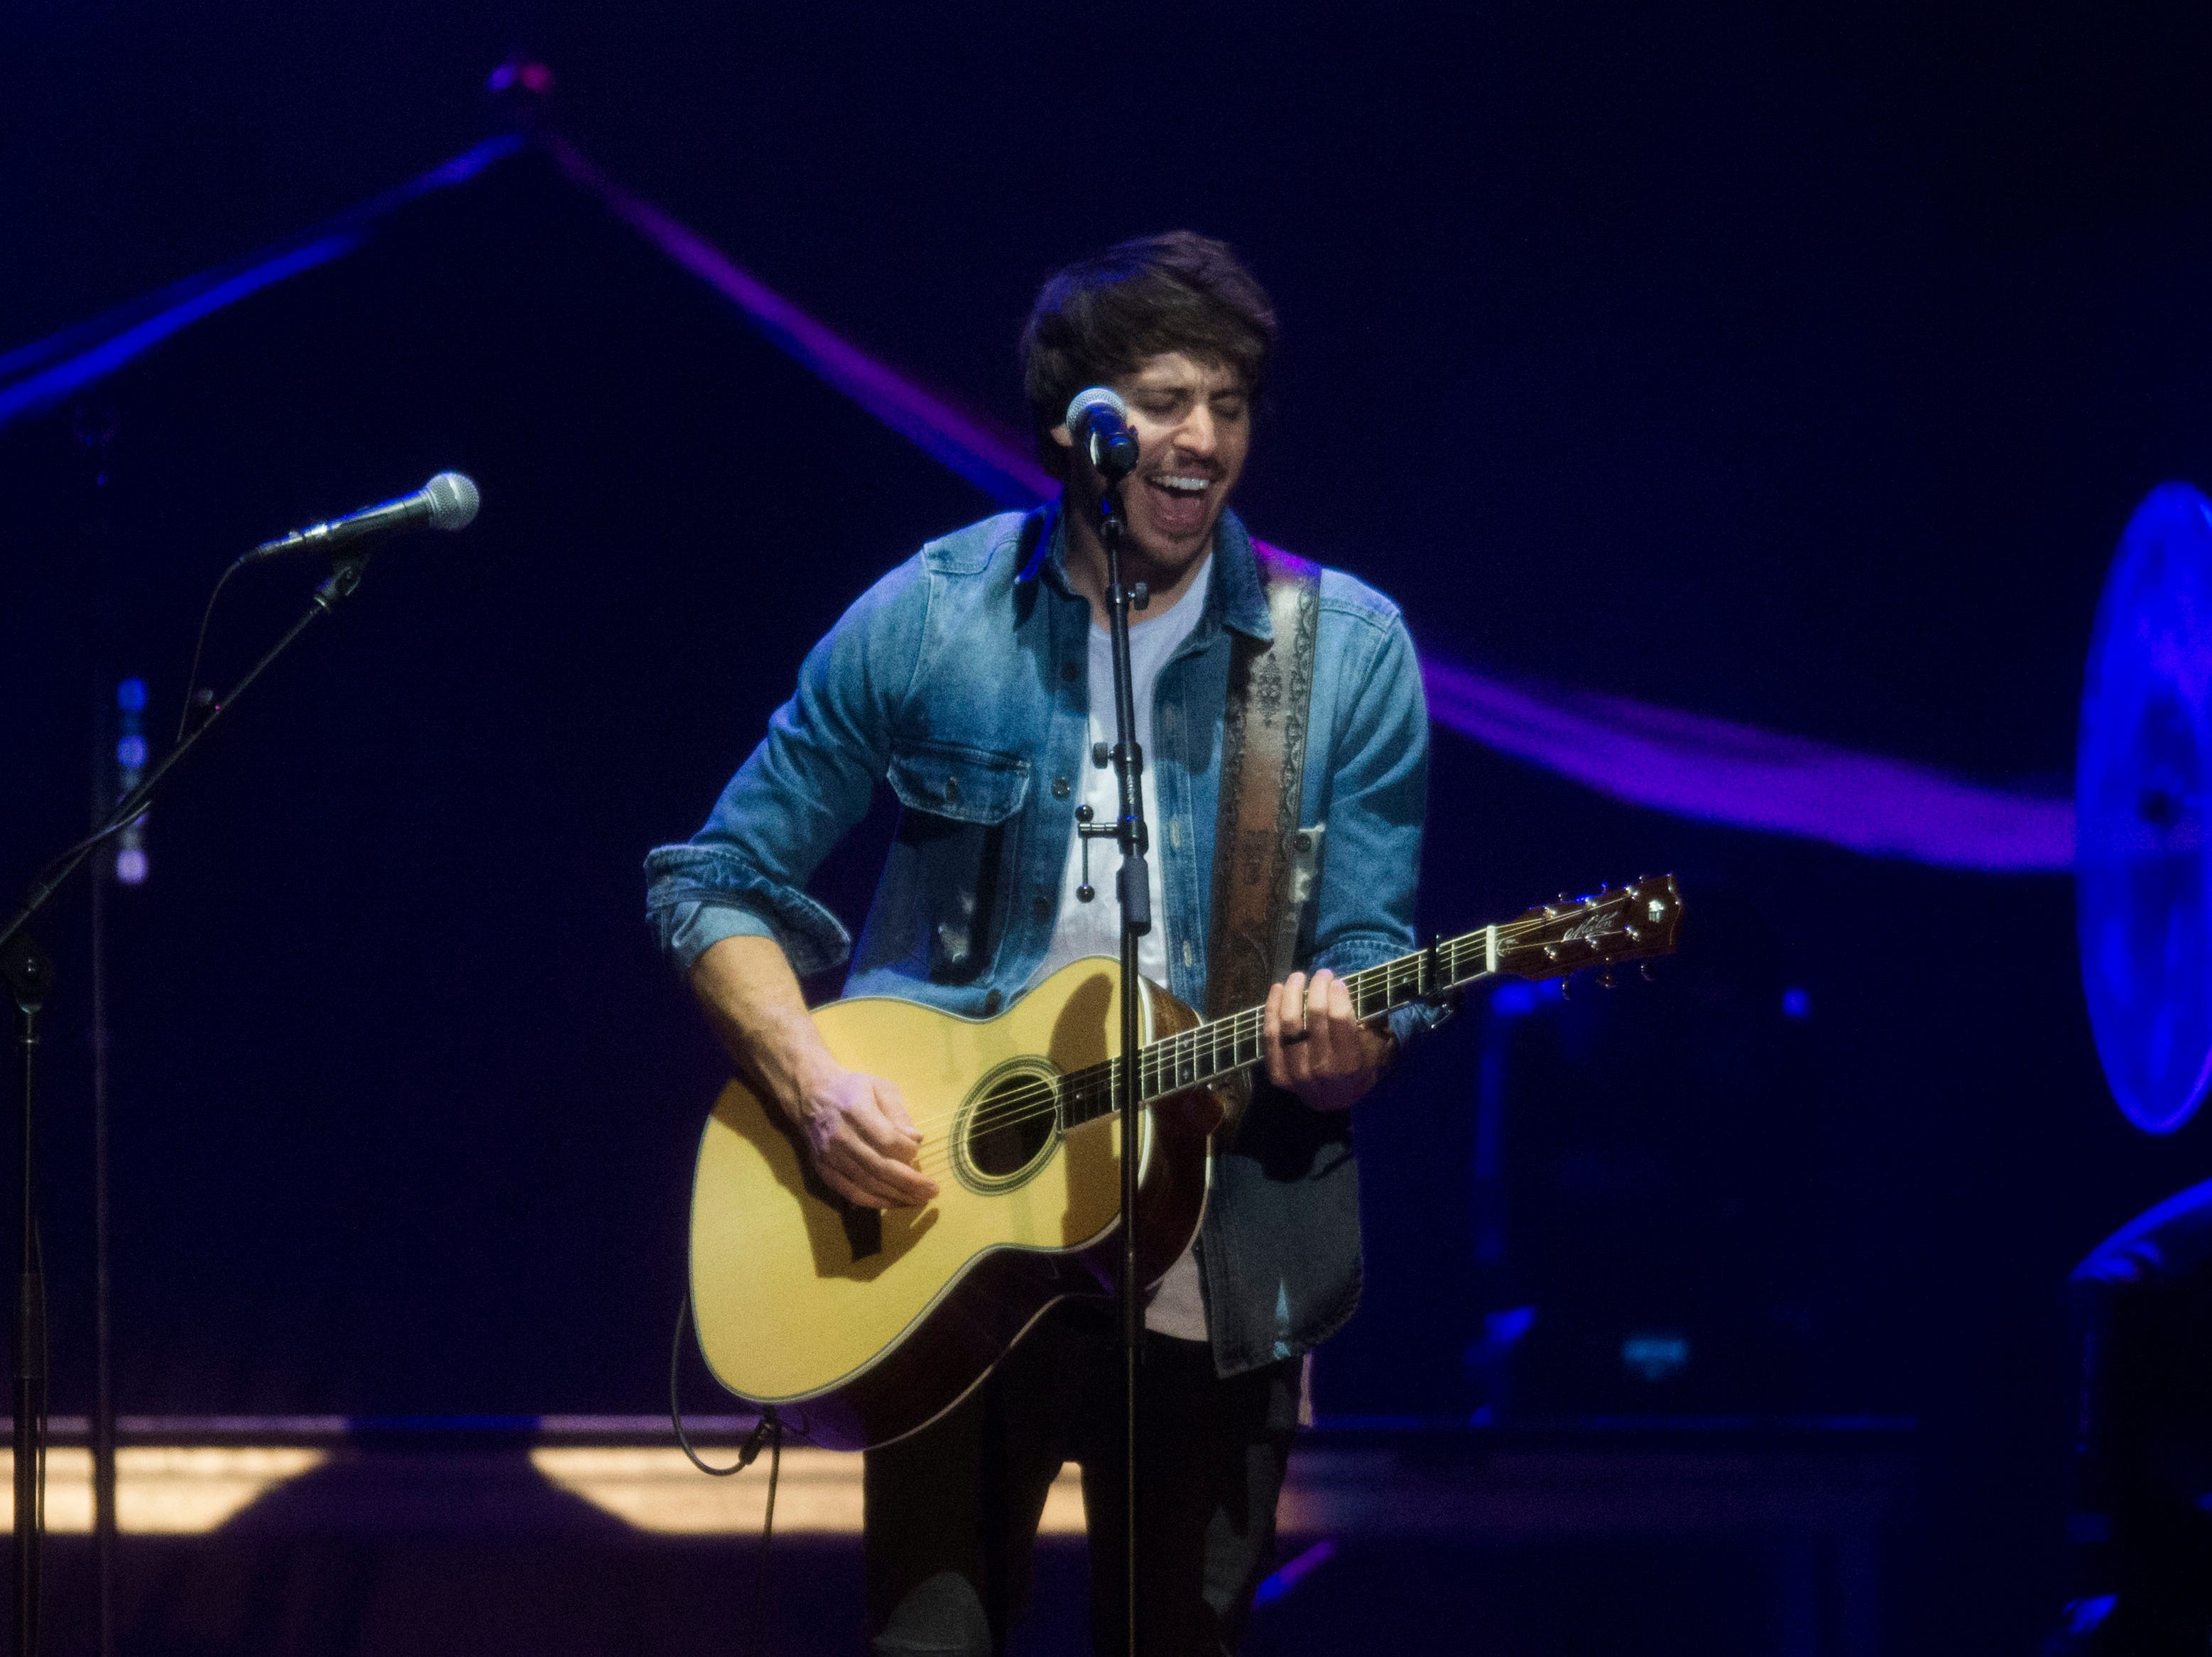 Morgan Evans opens for a Chris Young concert at Thompson-Boling Arena, which also featured Dan + Shay as an opening act, Thursday Nov. 29, 2018.